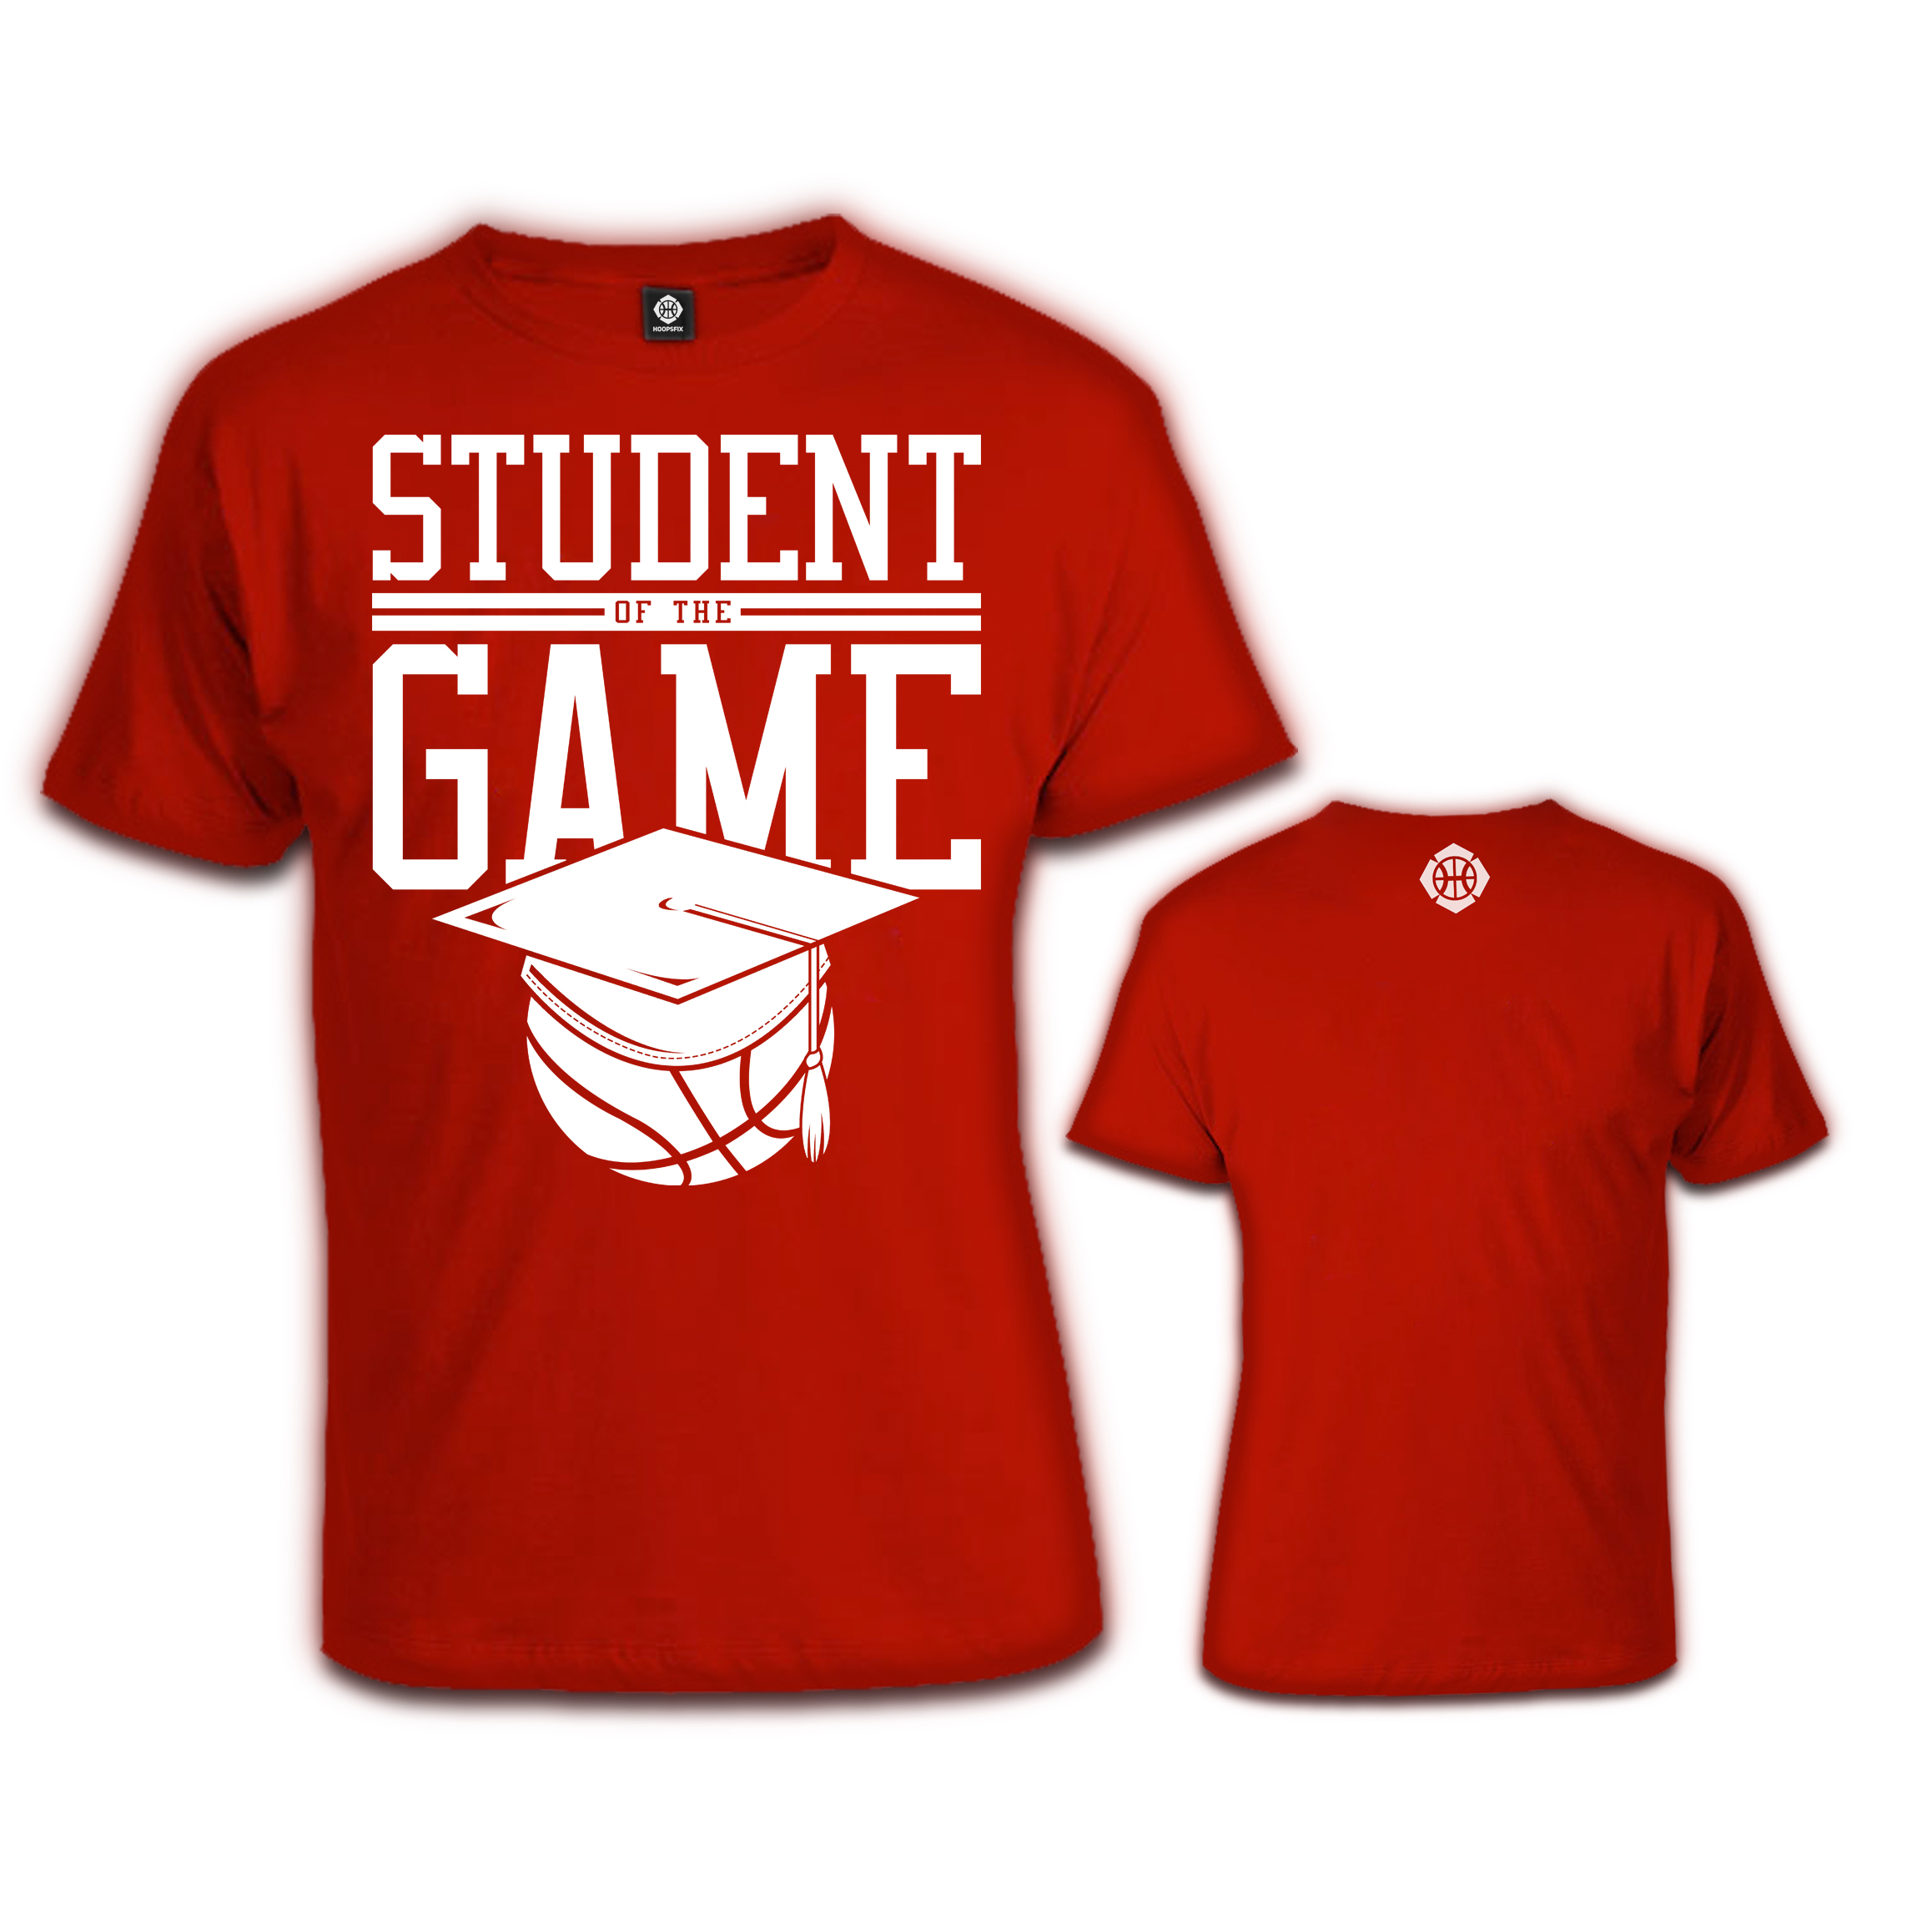 Student Of The Game Tee Hoopsfix Store